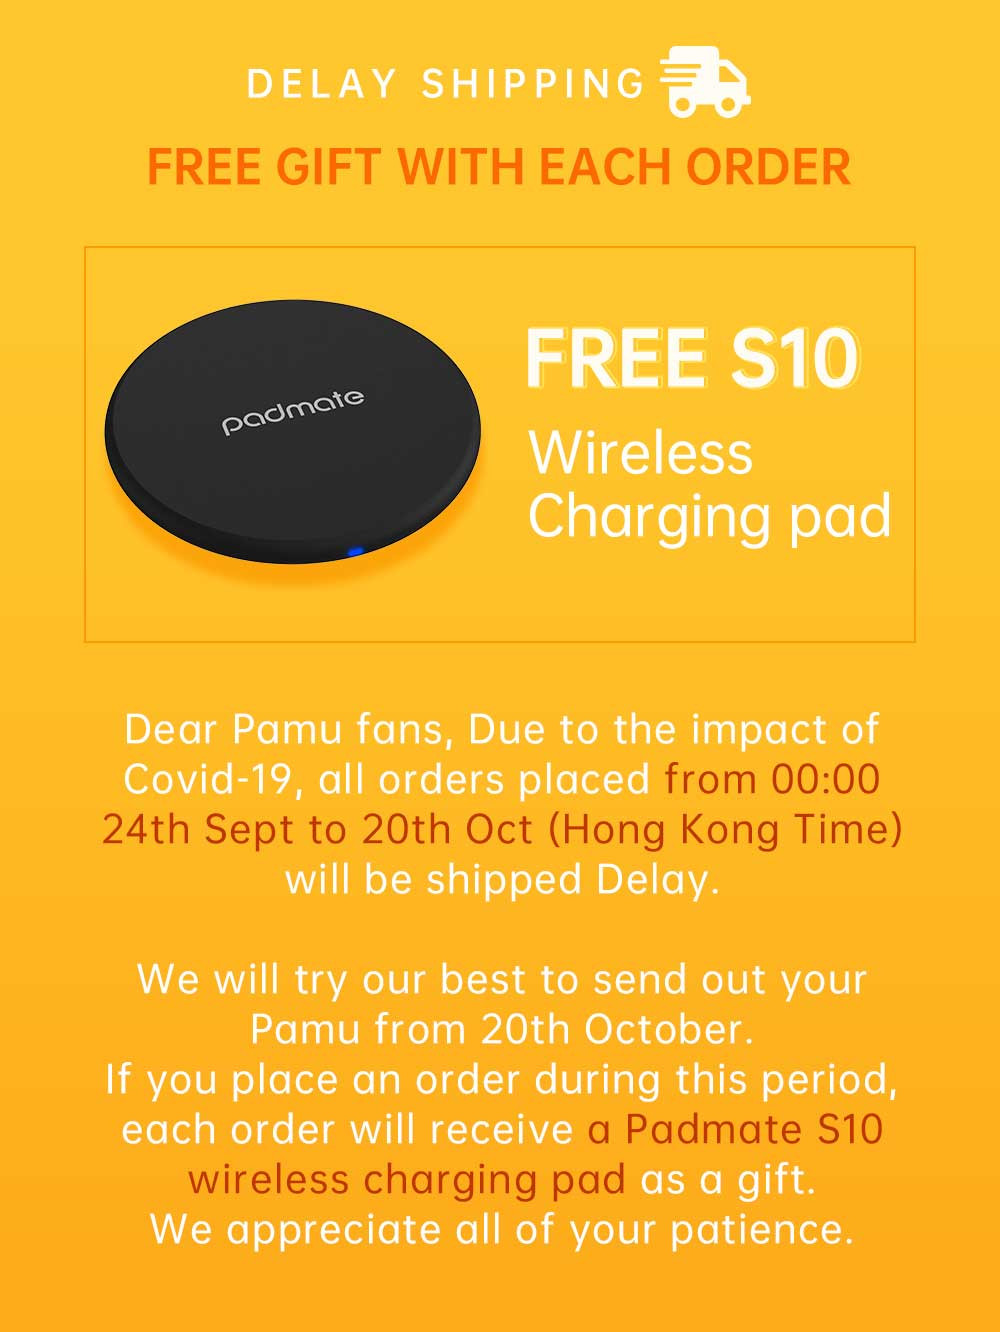 Get Padmate Wireless Charger Pad S10 for free, worth $14.90